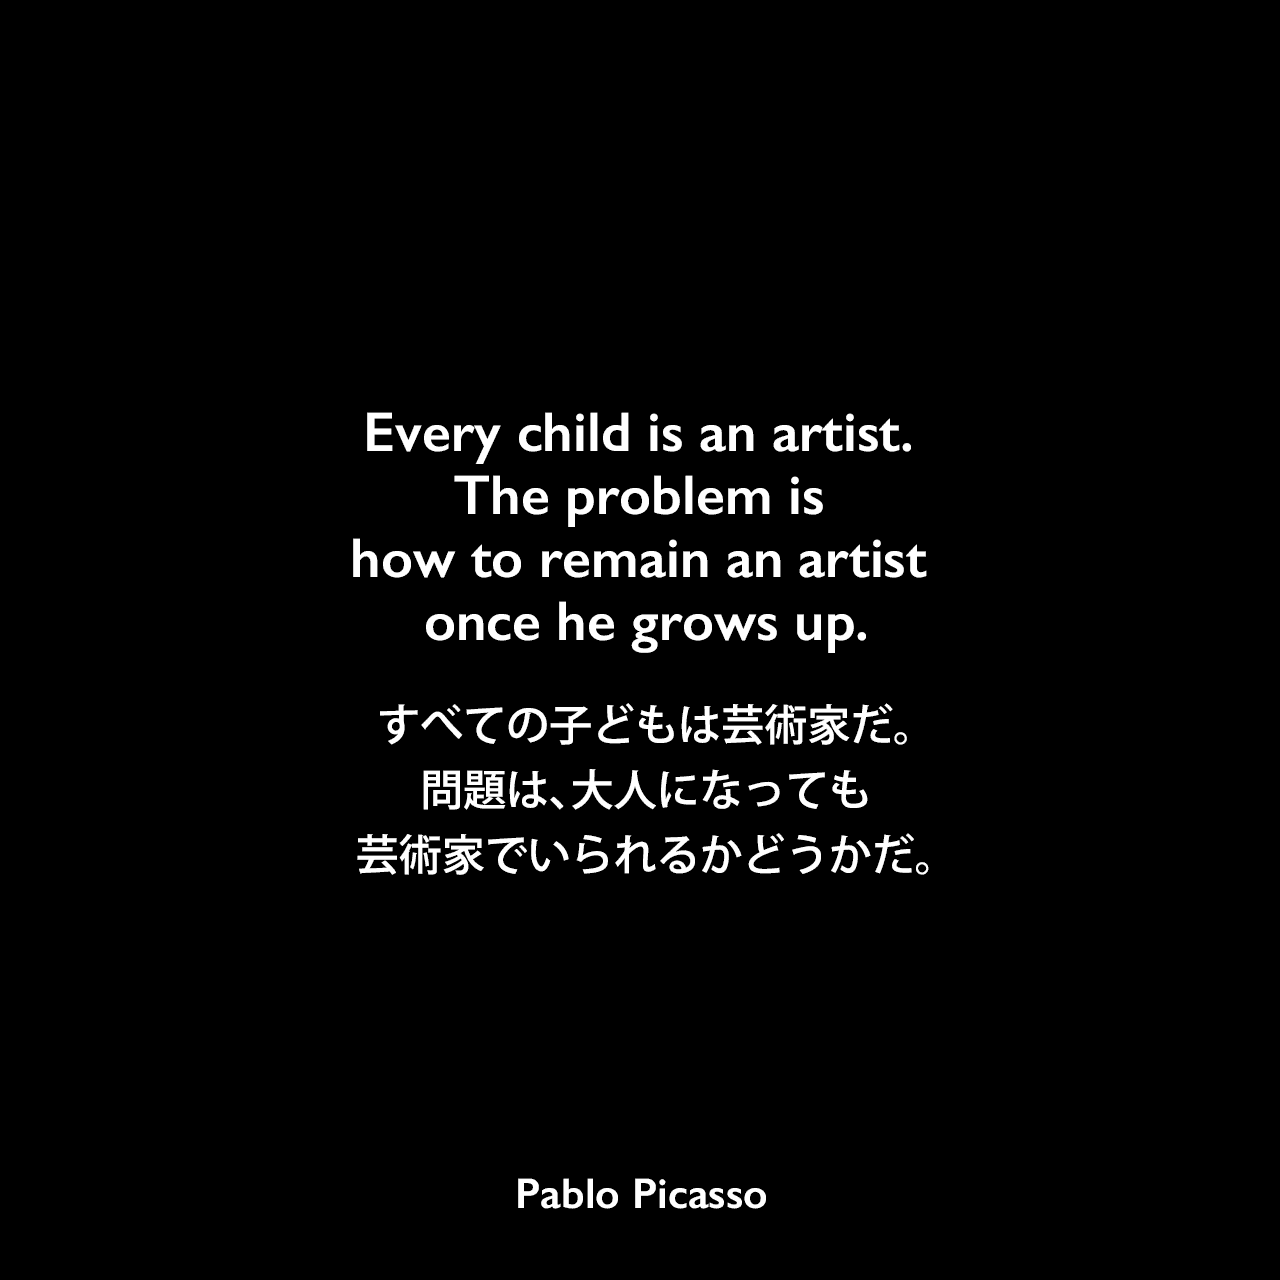 Every child is an artist. The problem is how to remain an artist once he grows up.すべての子どもは芸術家だ。問題は、大人になっても芸術家でいられるかどうかだ。Pablo Picasso